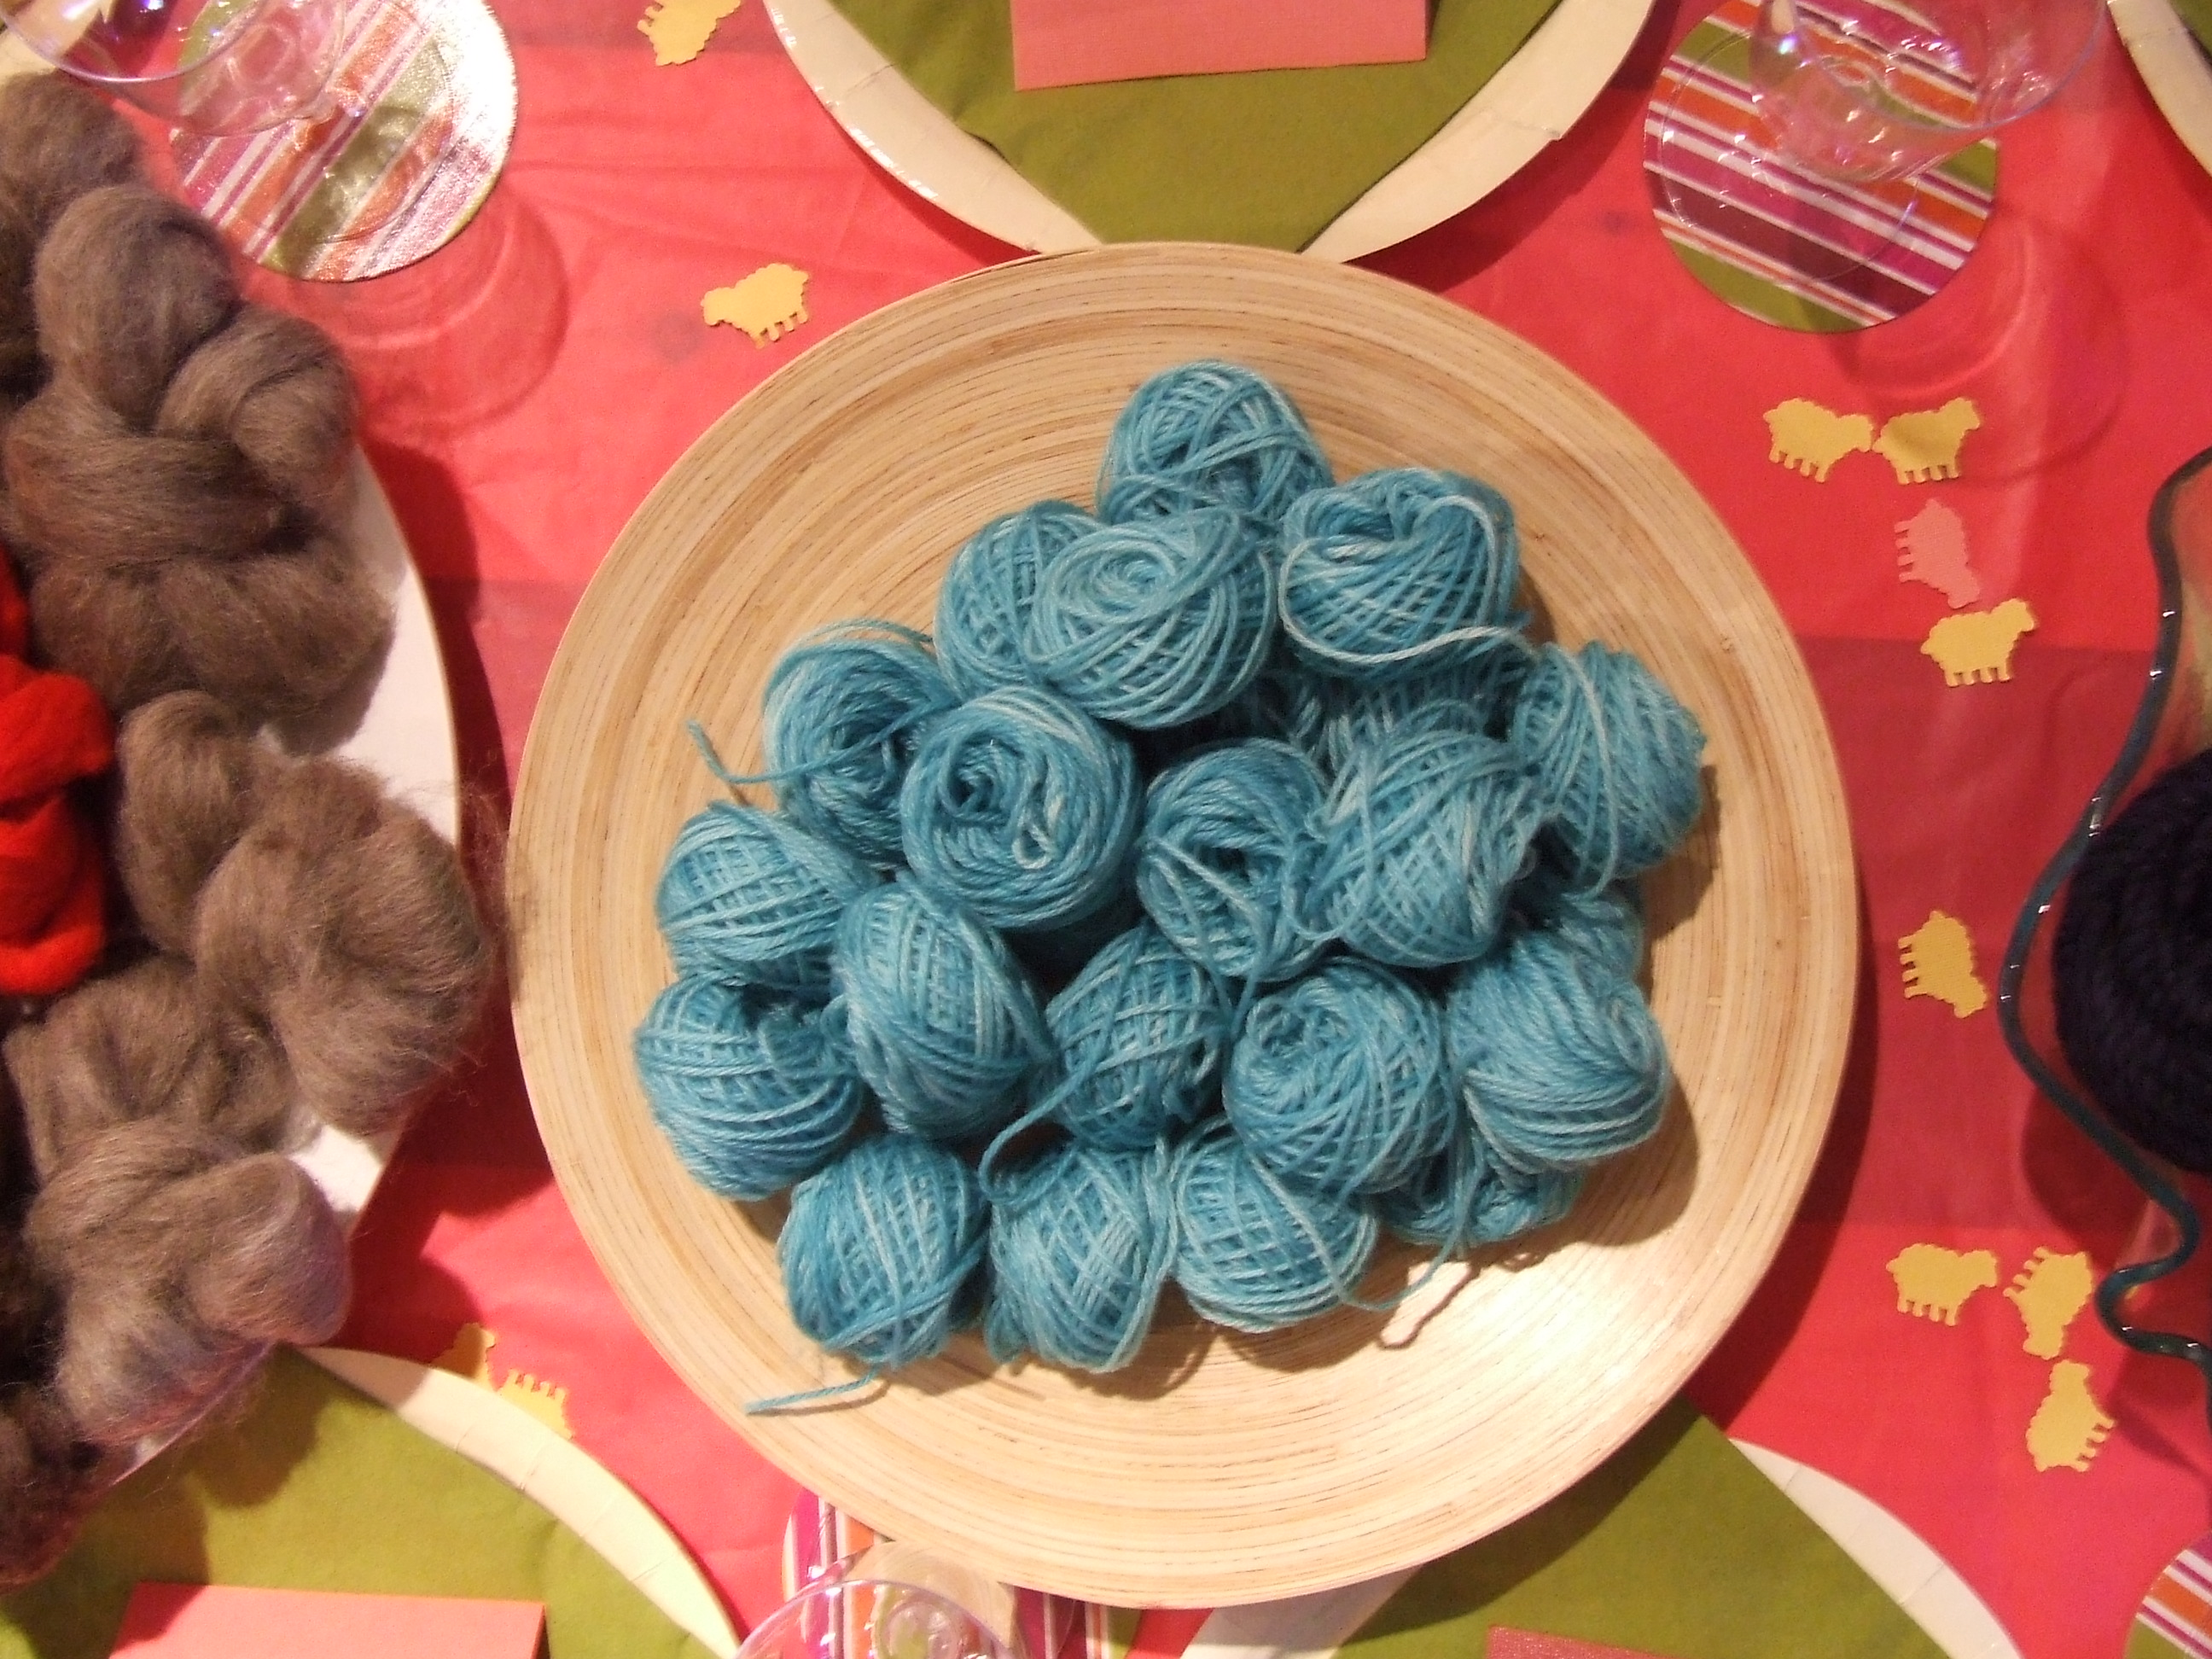 our local special (unwind yarns) was a hit!